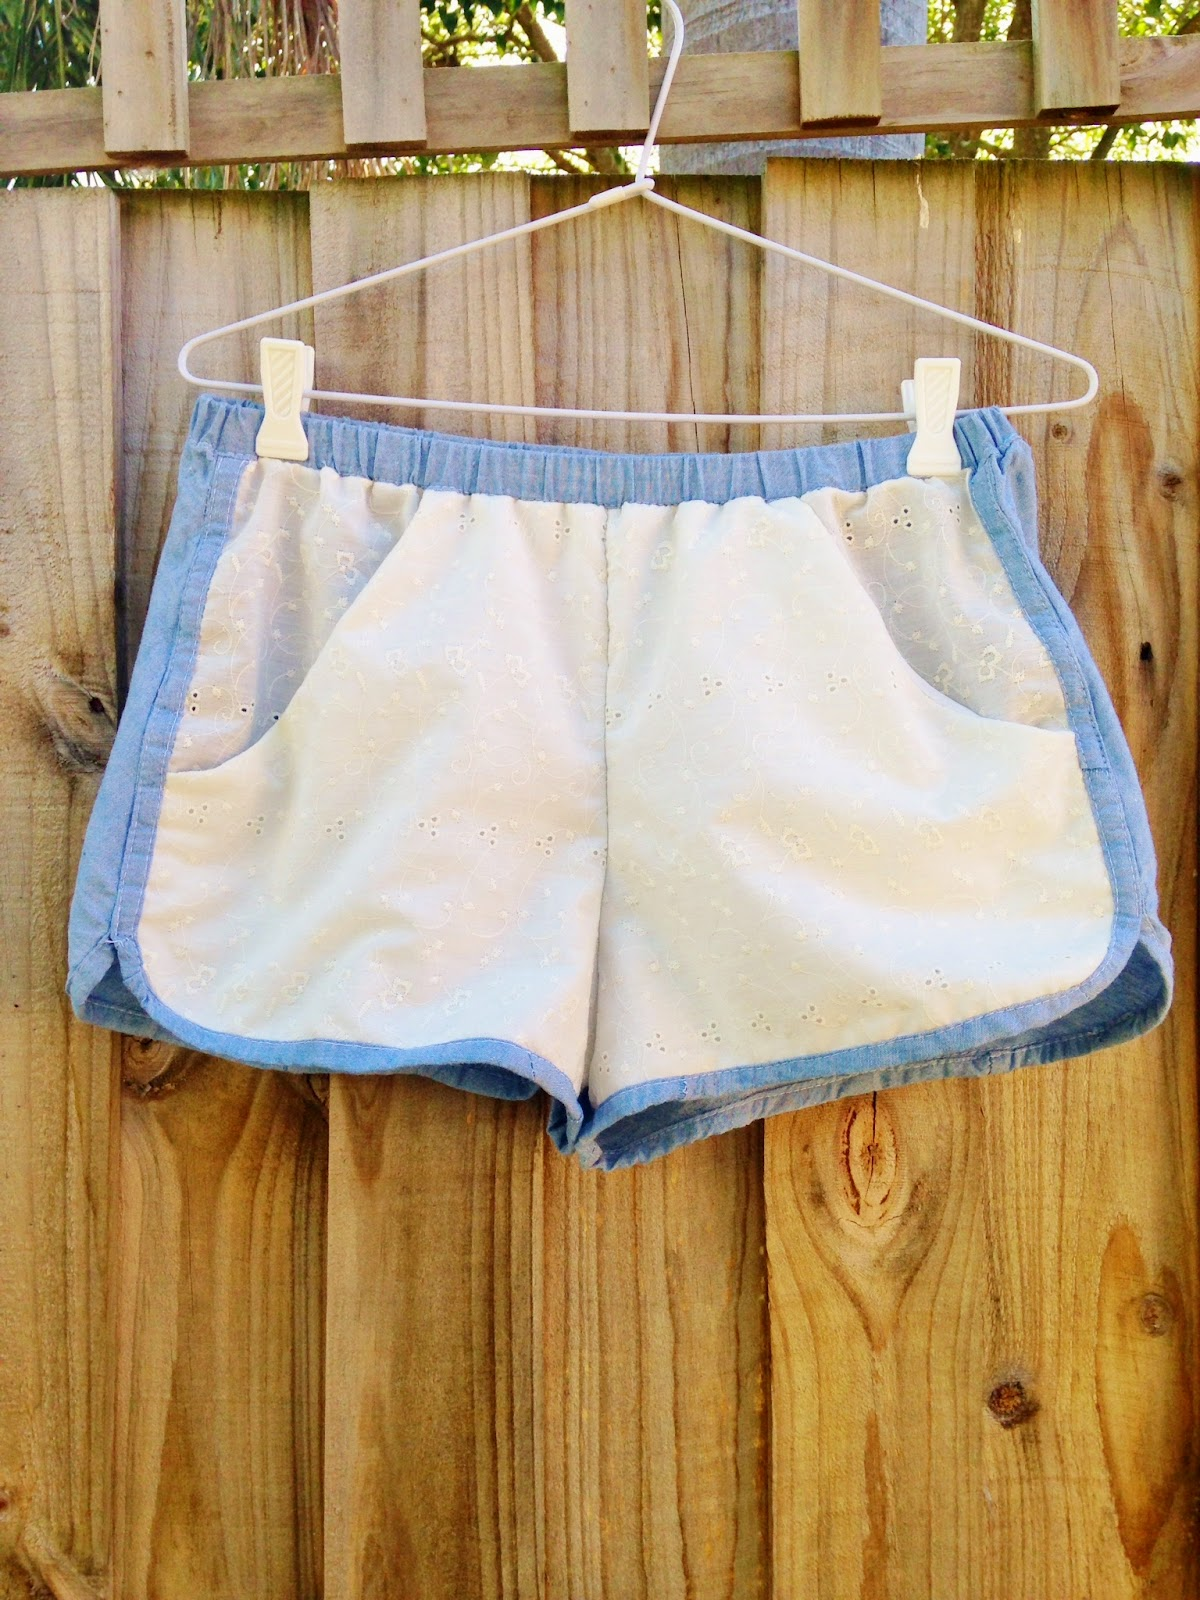 http://mel-allwrappedup.blogspot.com.au/2015/02/not-so-city-gym-shorts.html